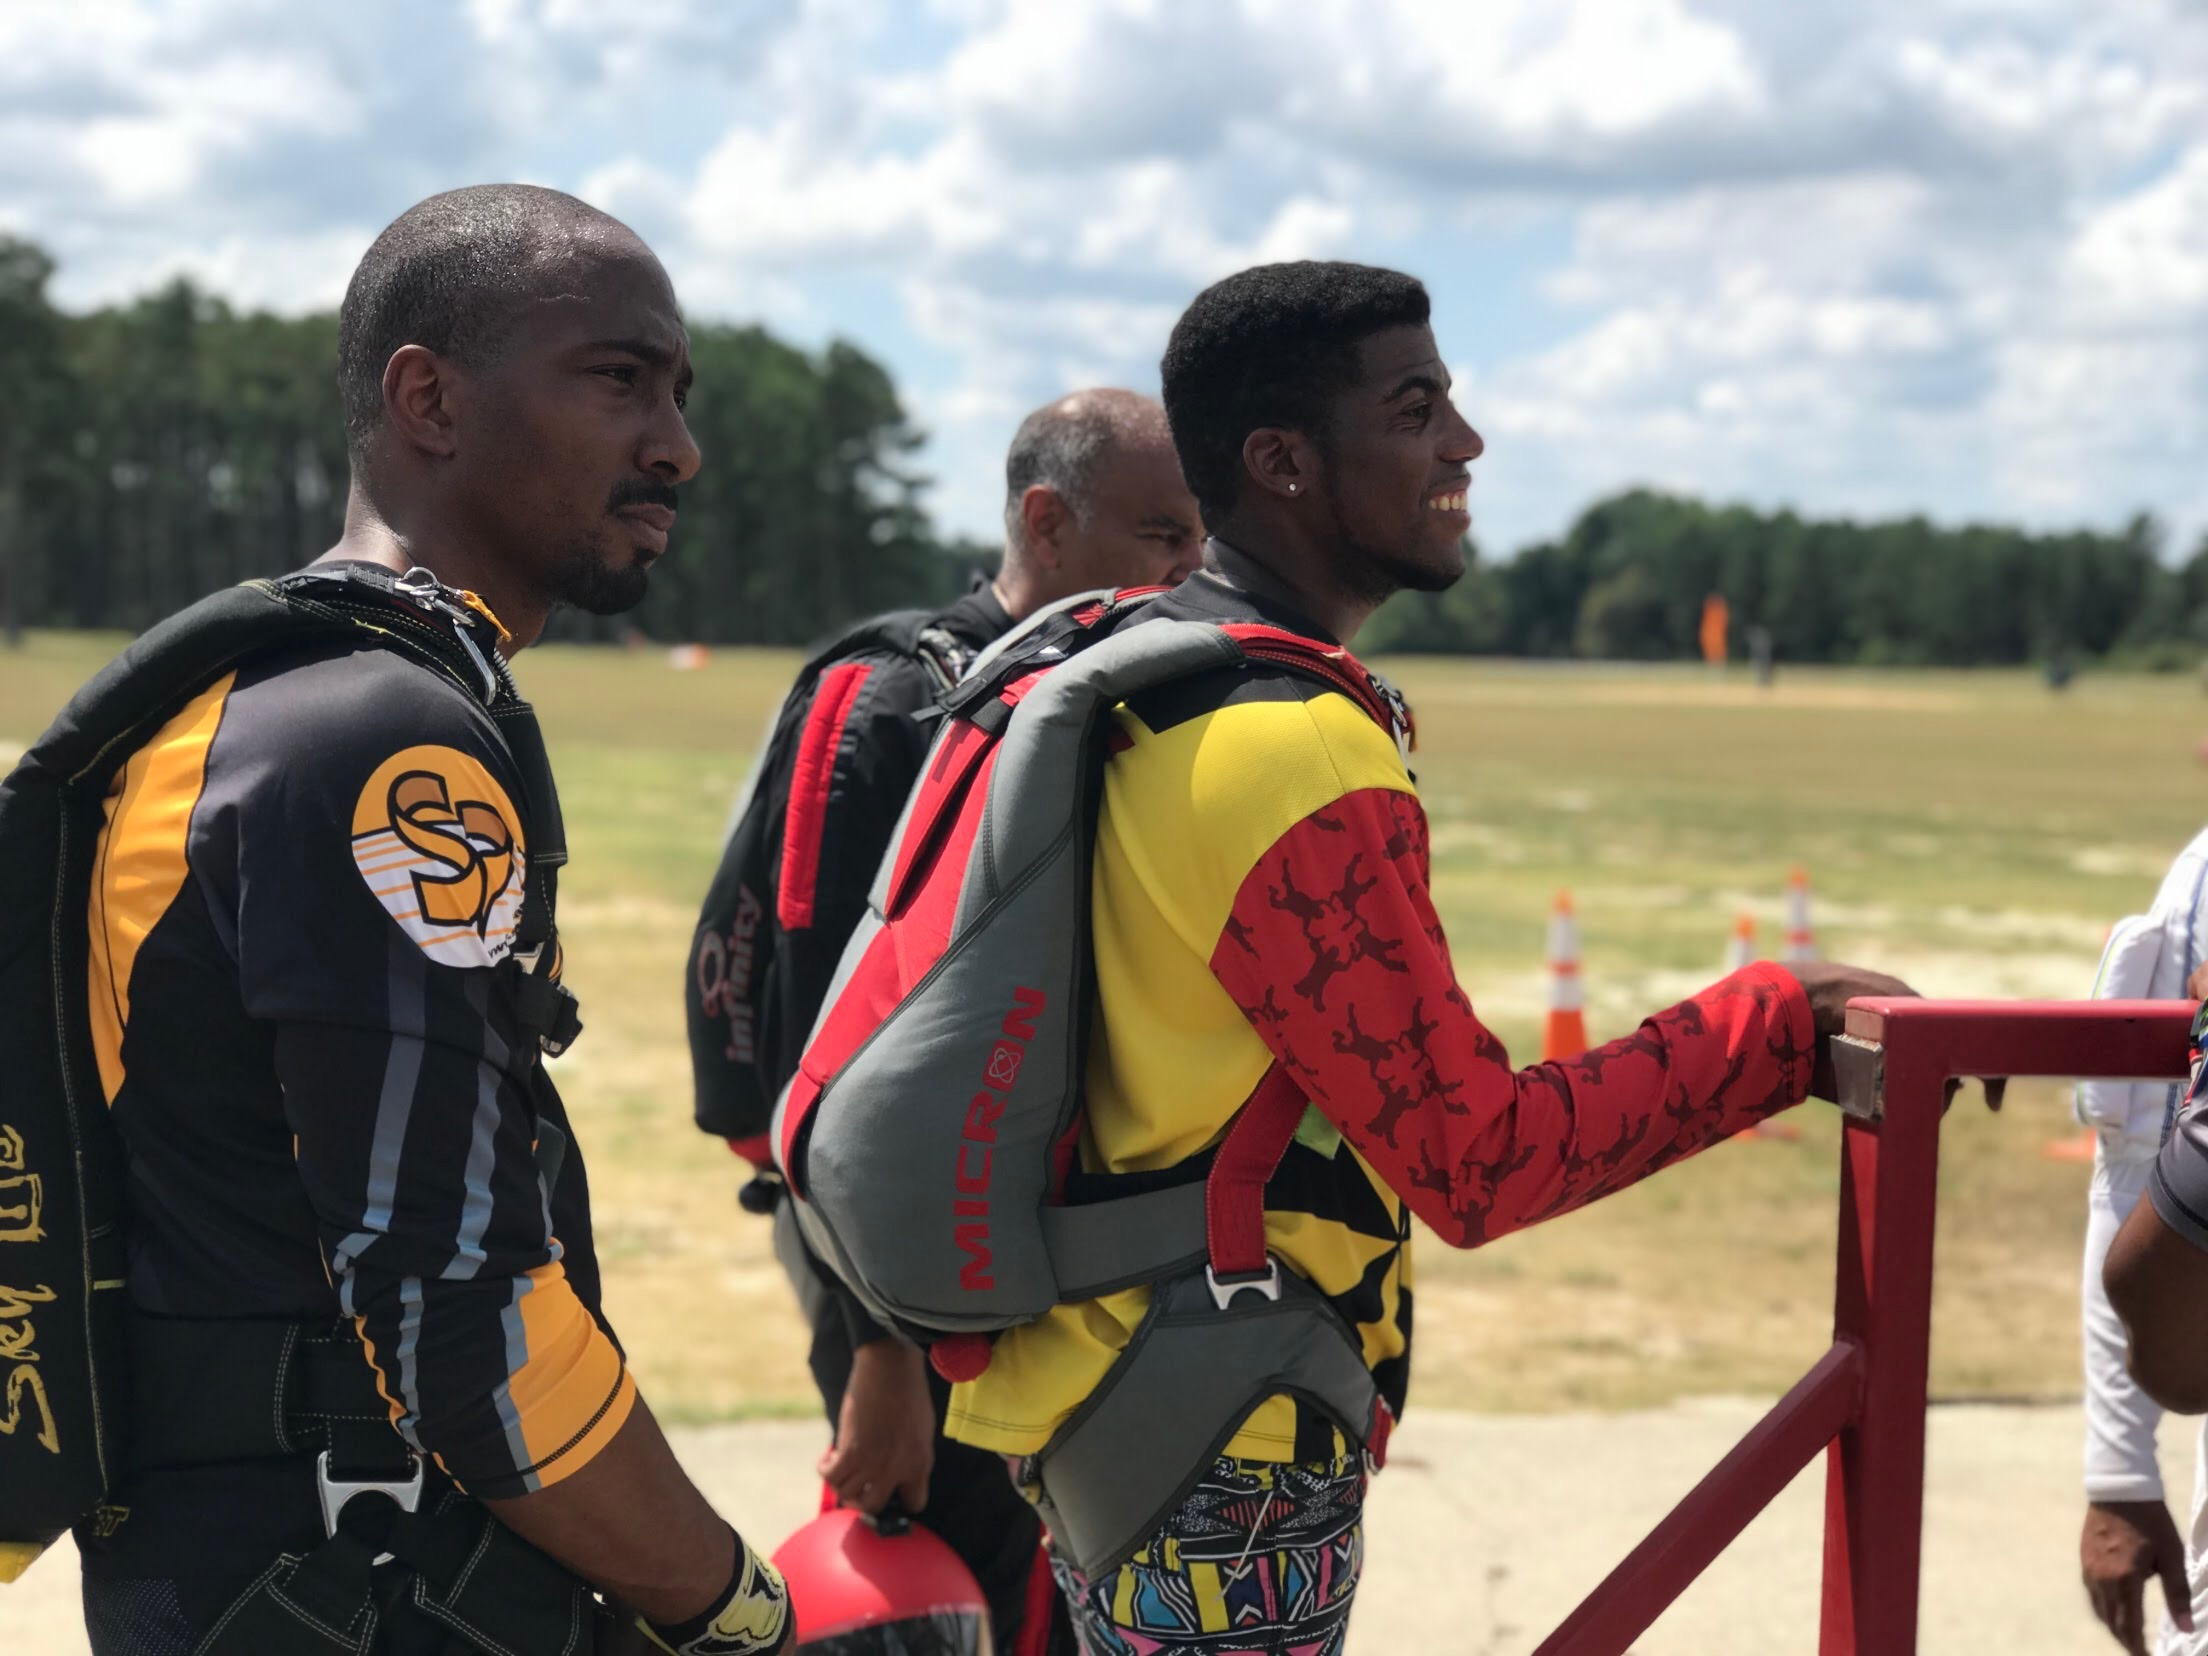 Matthew Smith (l) is pictured at a drop zone in North Carolina during a Team Blackstar meetup ( Photo credit: Danielle Williams)